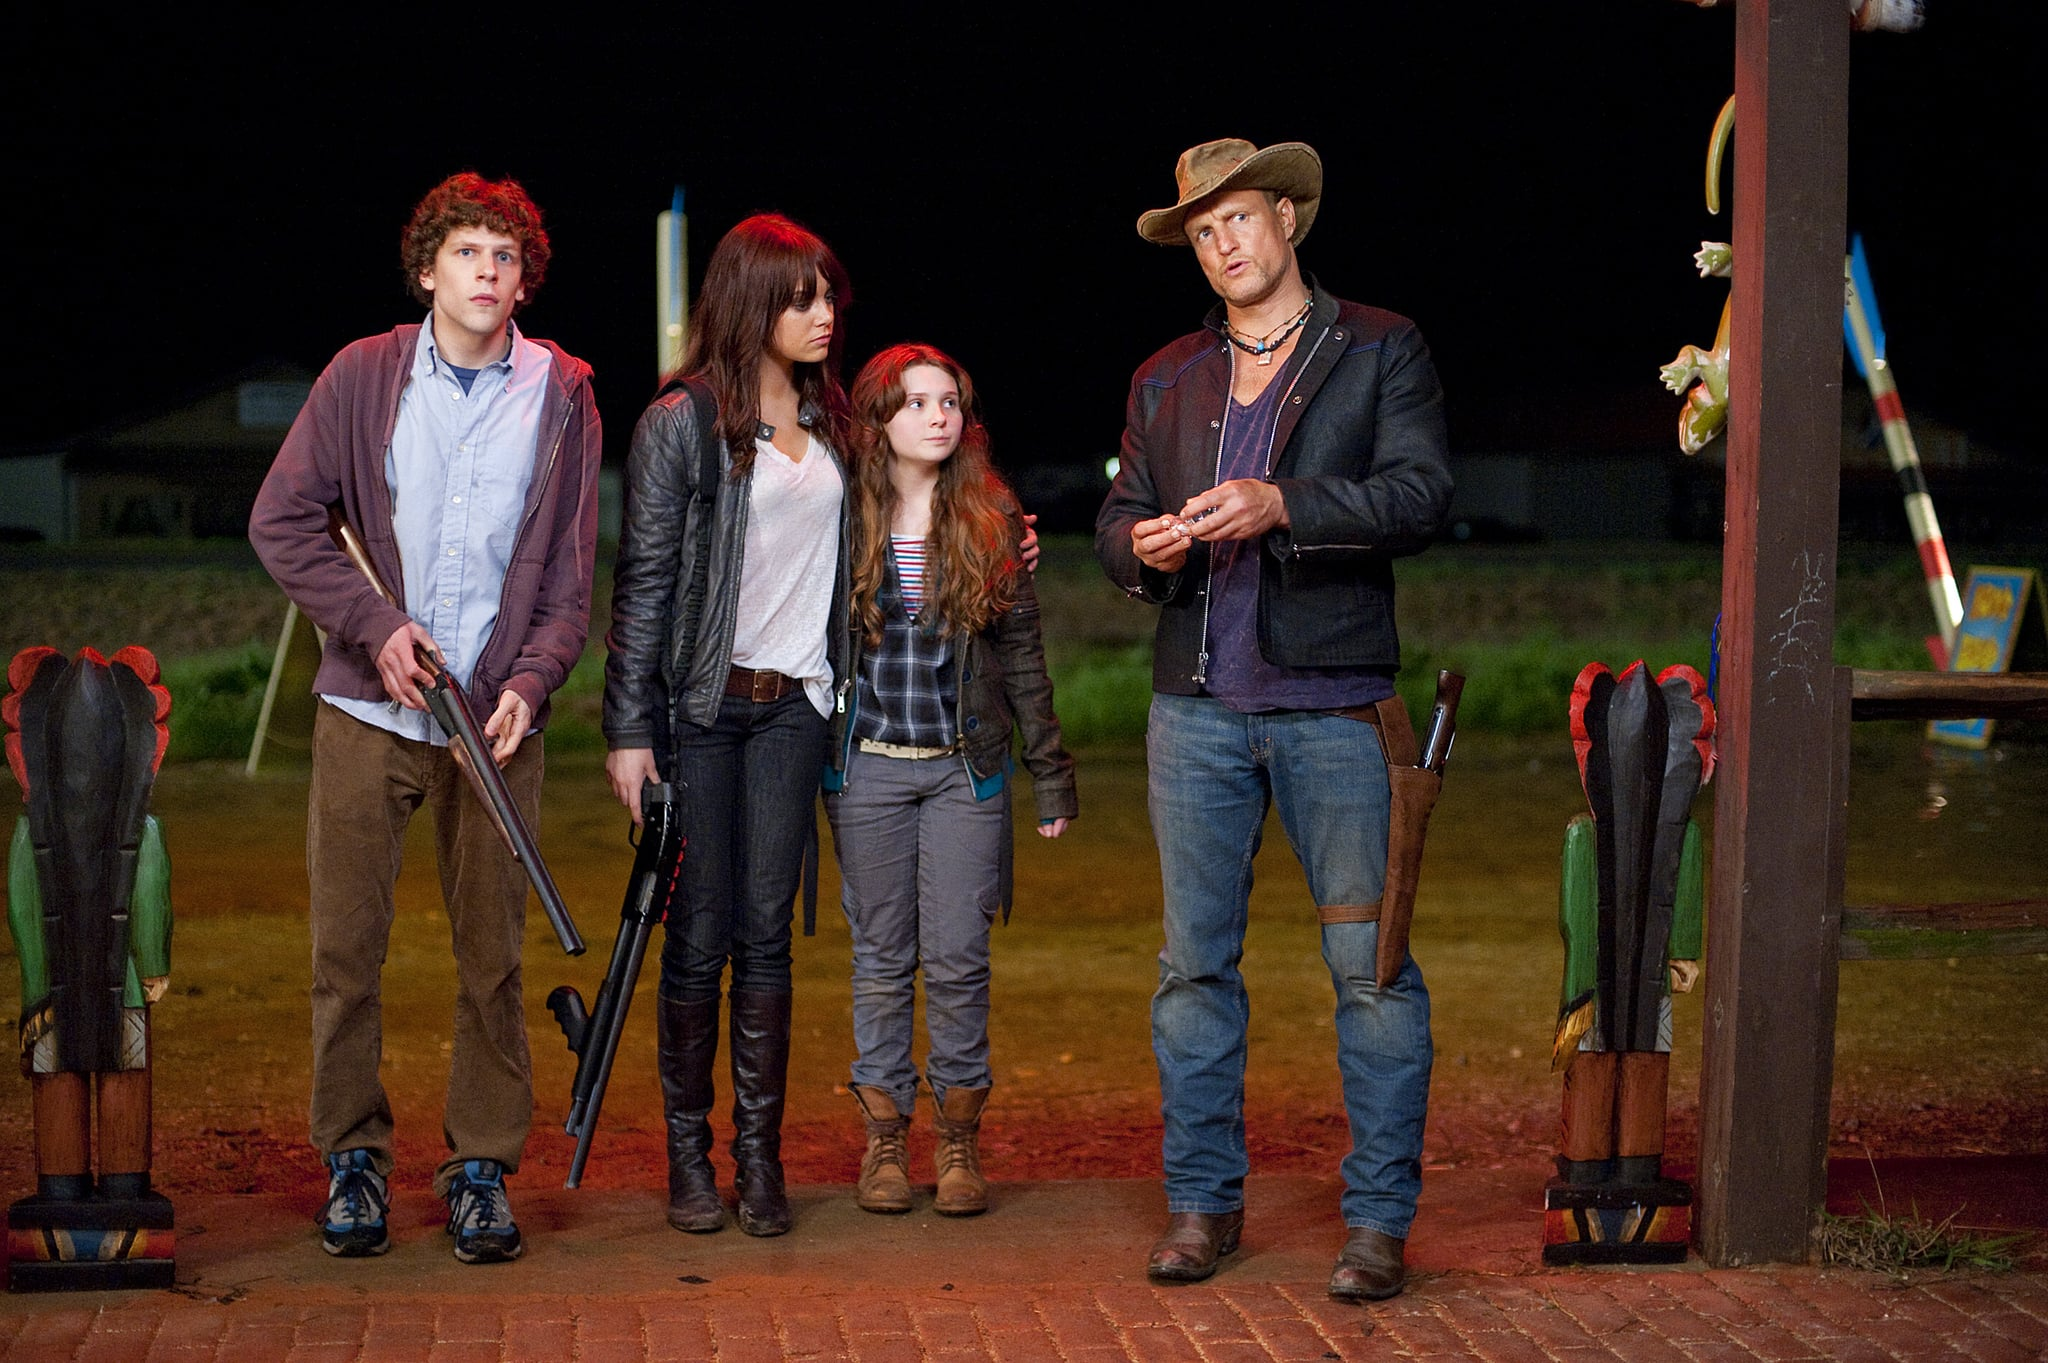 ZOMBIELAND, from left: Jesse Eisenberg, Emma Stone, Abigail Breslin, Woody Harrelson, 2009. Ph: Glen Wilson/Columbia Pictures/Courtesy Everett Collection